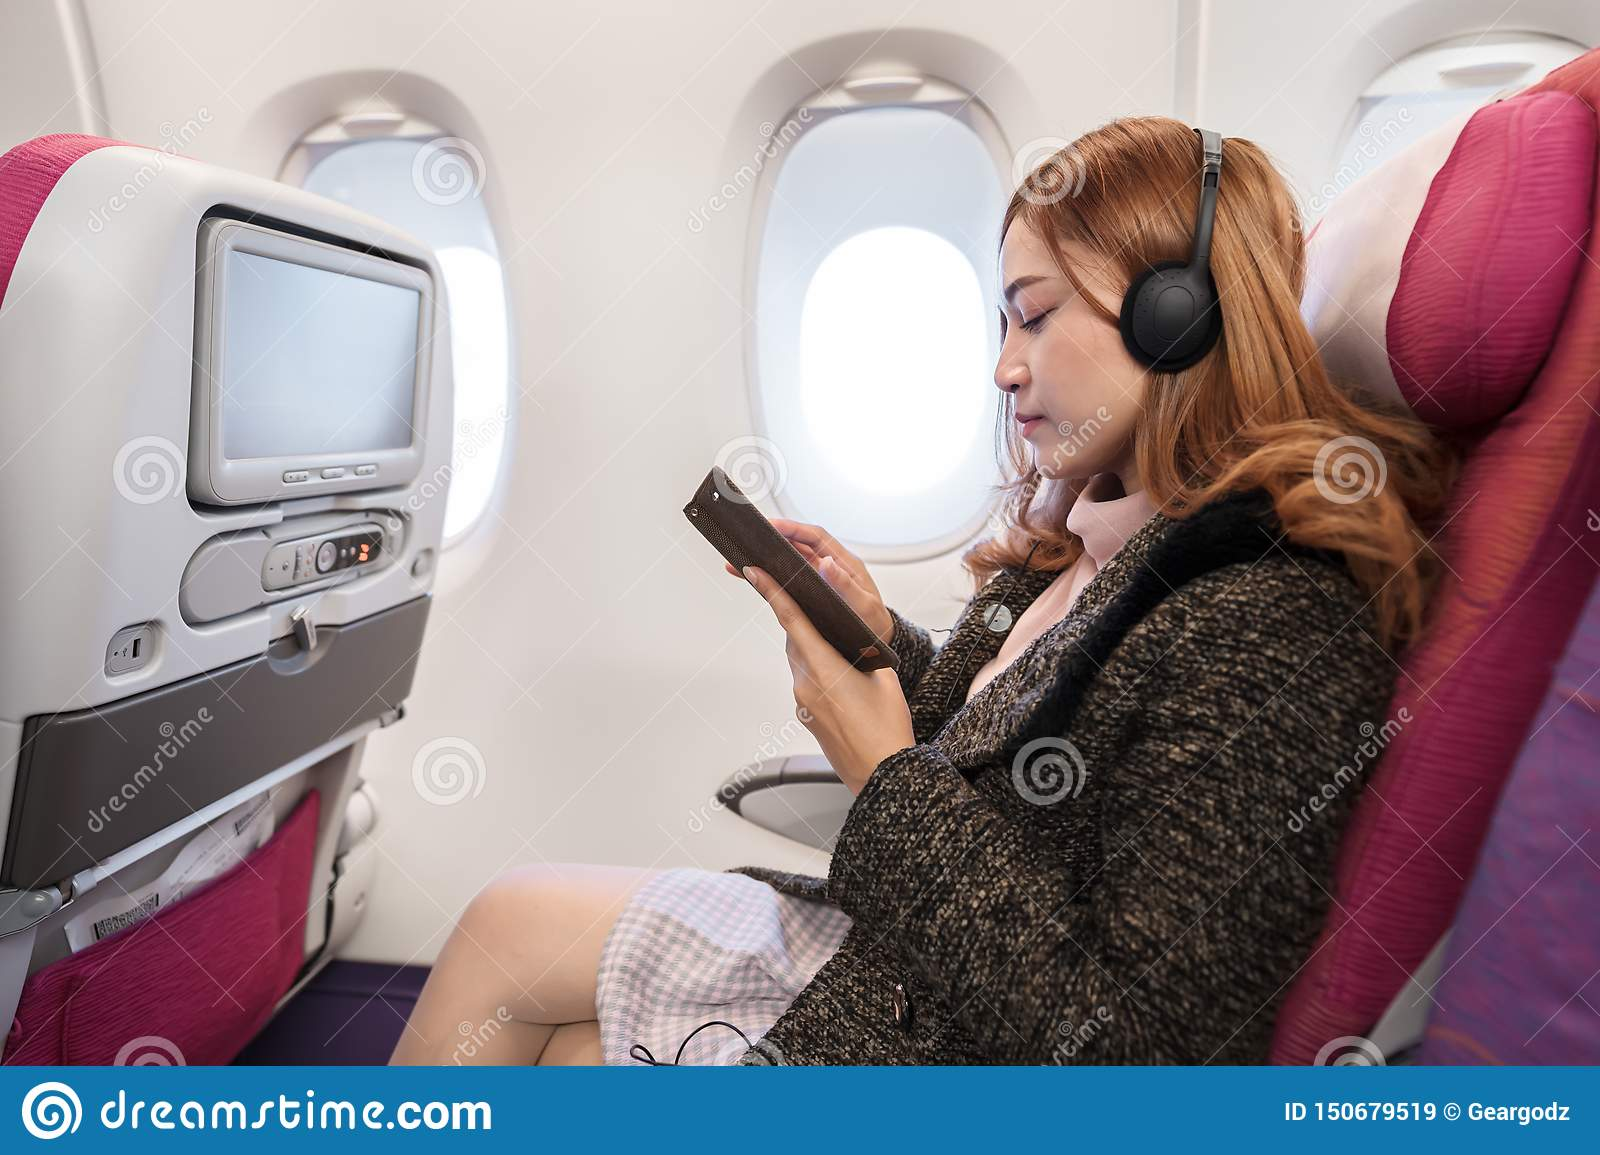 Woman using smartphone and listening to music with headphones on airplane in flight time